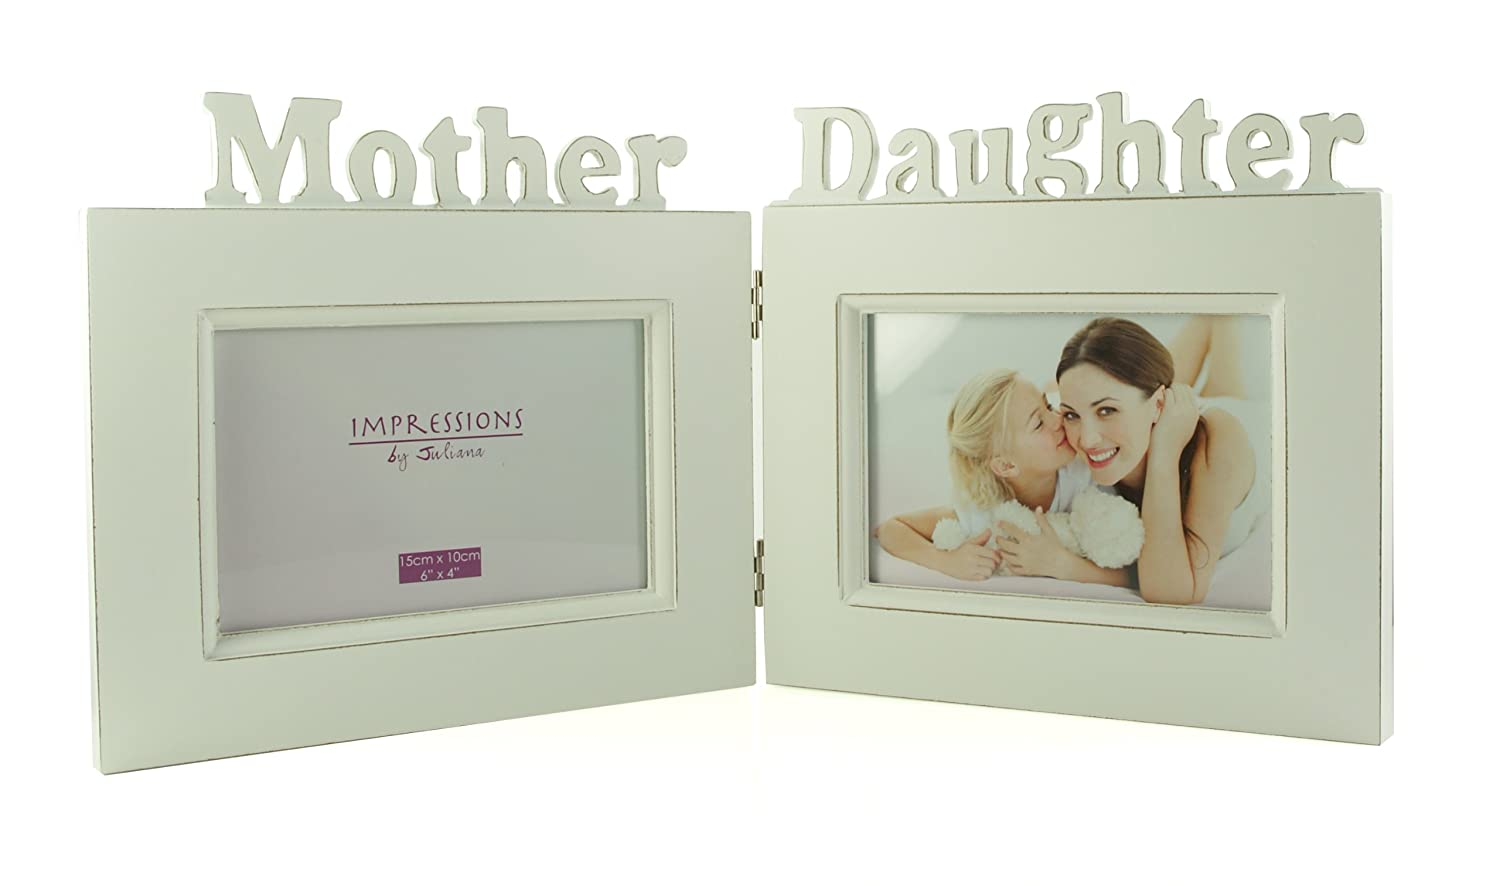 Vintage Shabby Chic Mum & Daughter Photo Frame Gift: Amazon.co.uk ...